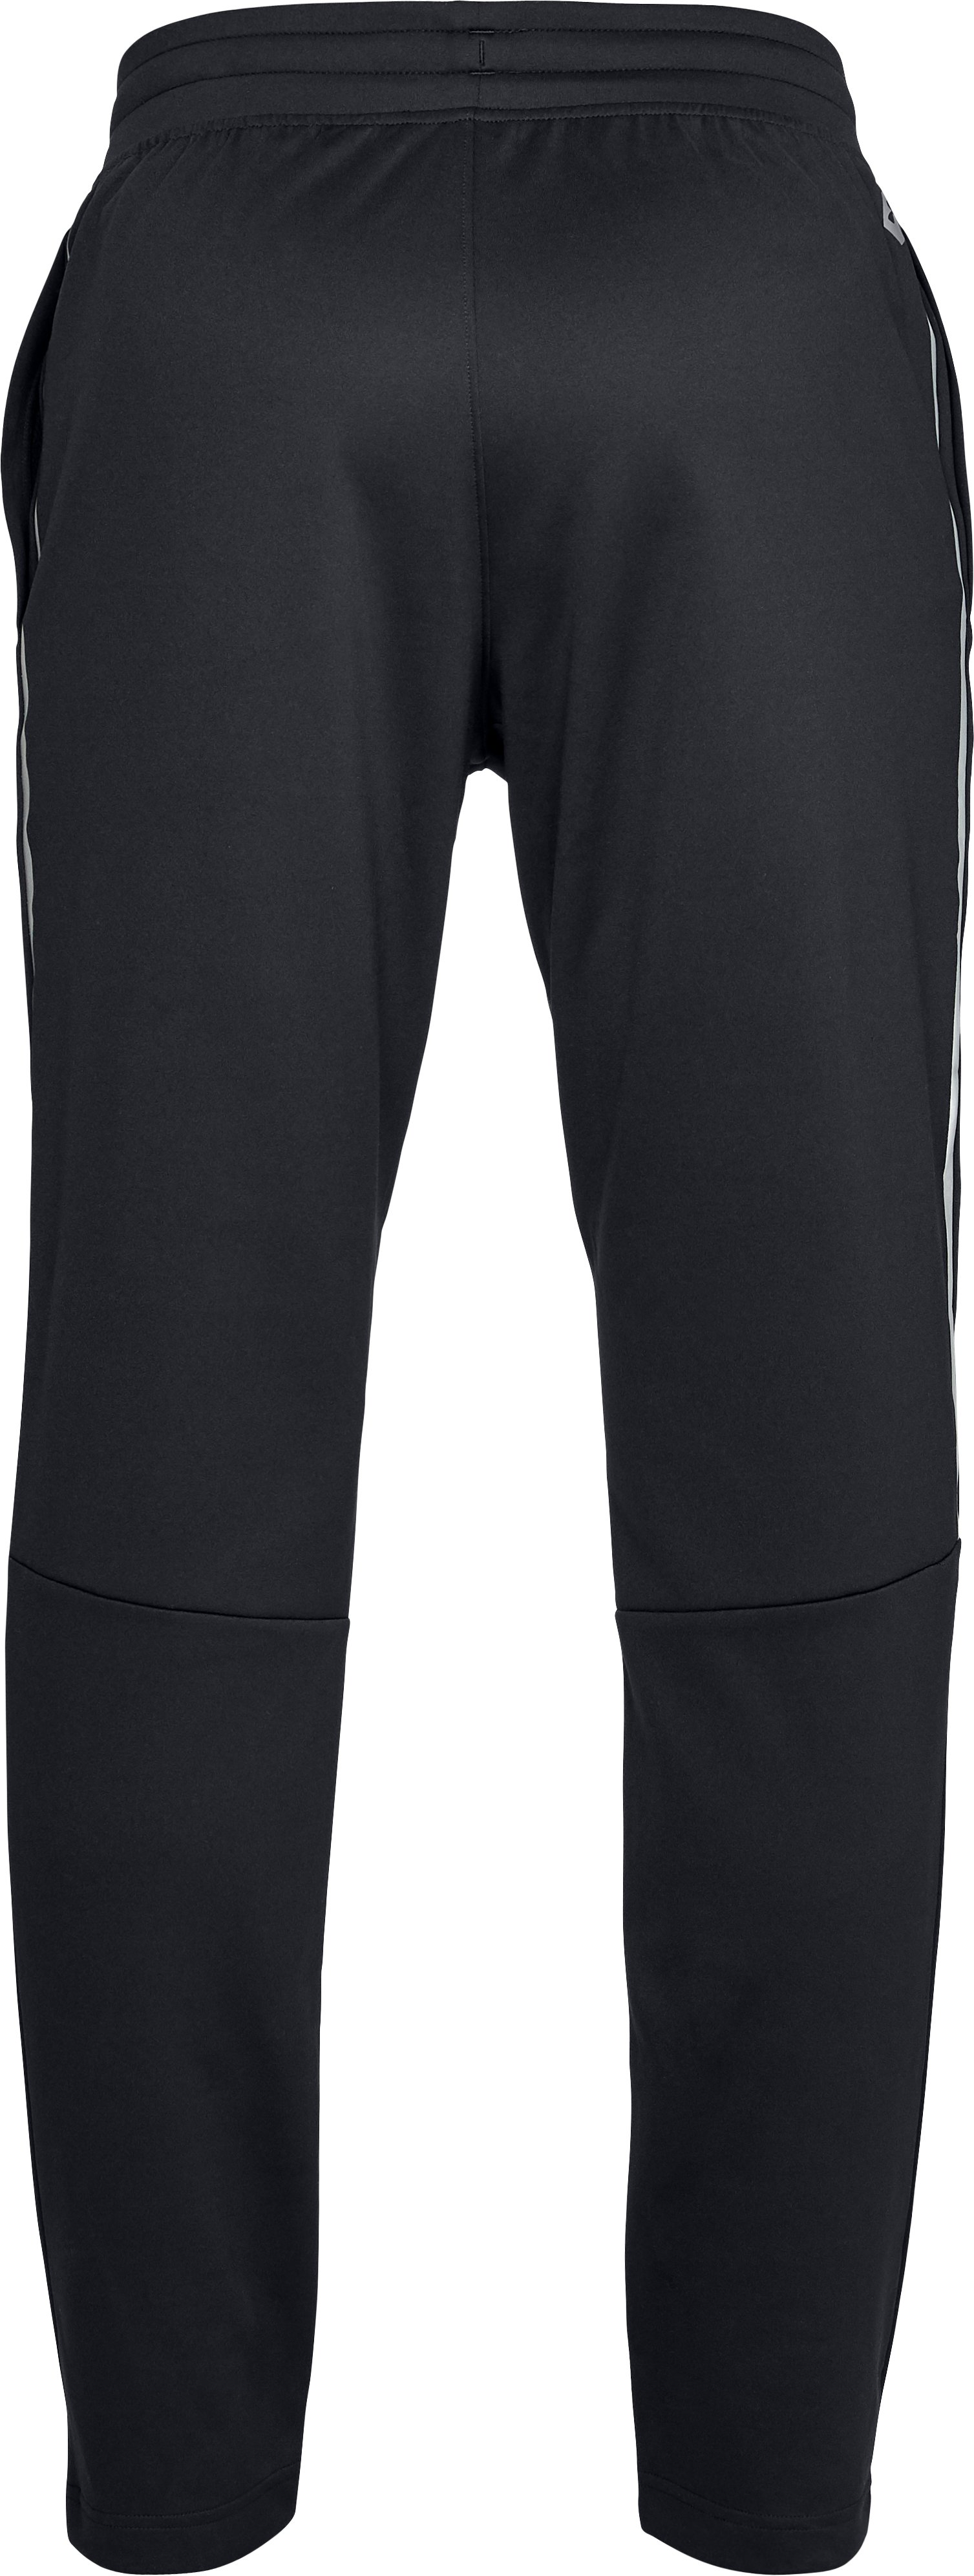 Men's Athlete Recovery Track Suit™ Pants, Black ,